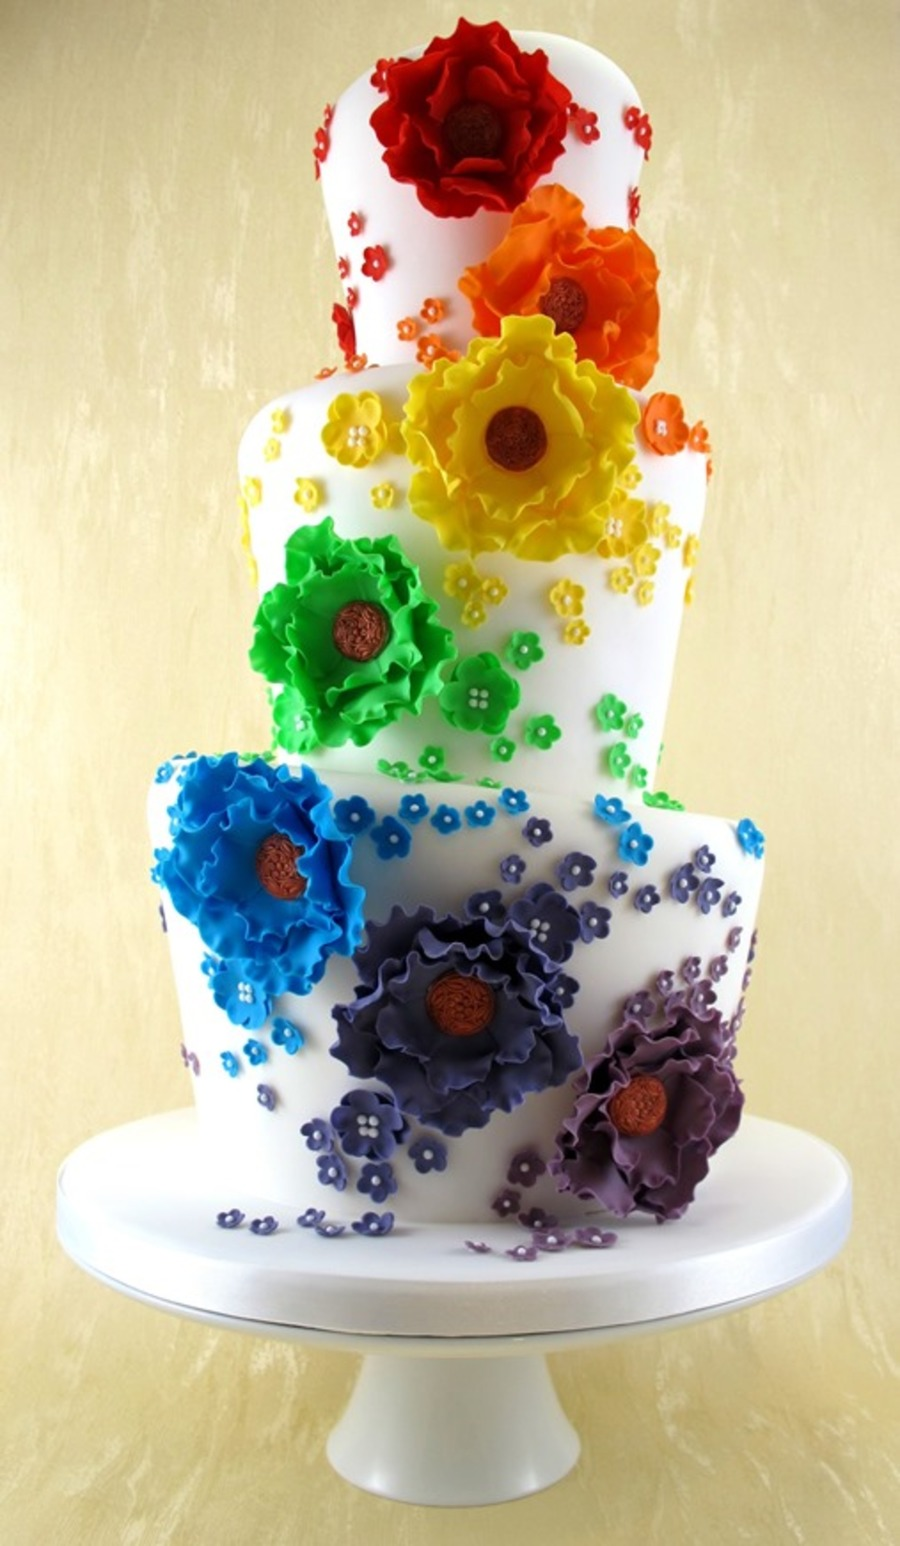 Wedding Cake Ideas For Gay Wedding : Rainbow Wonky Wedding Cake - CakeCentral.com